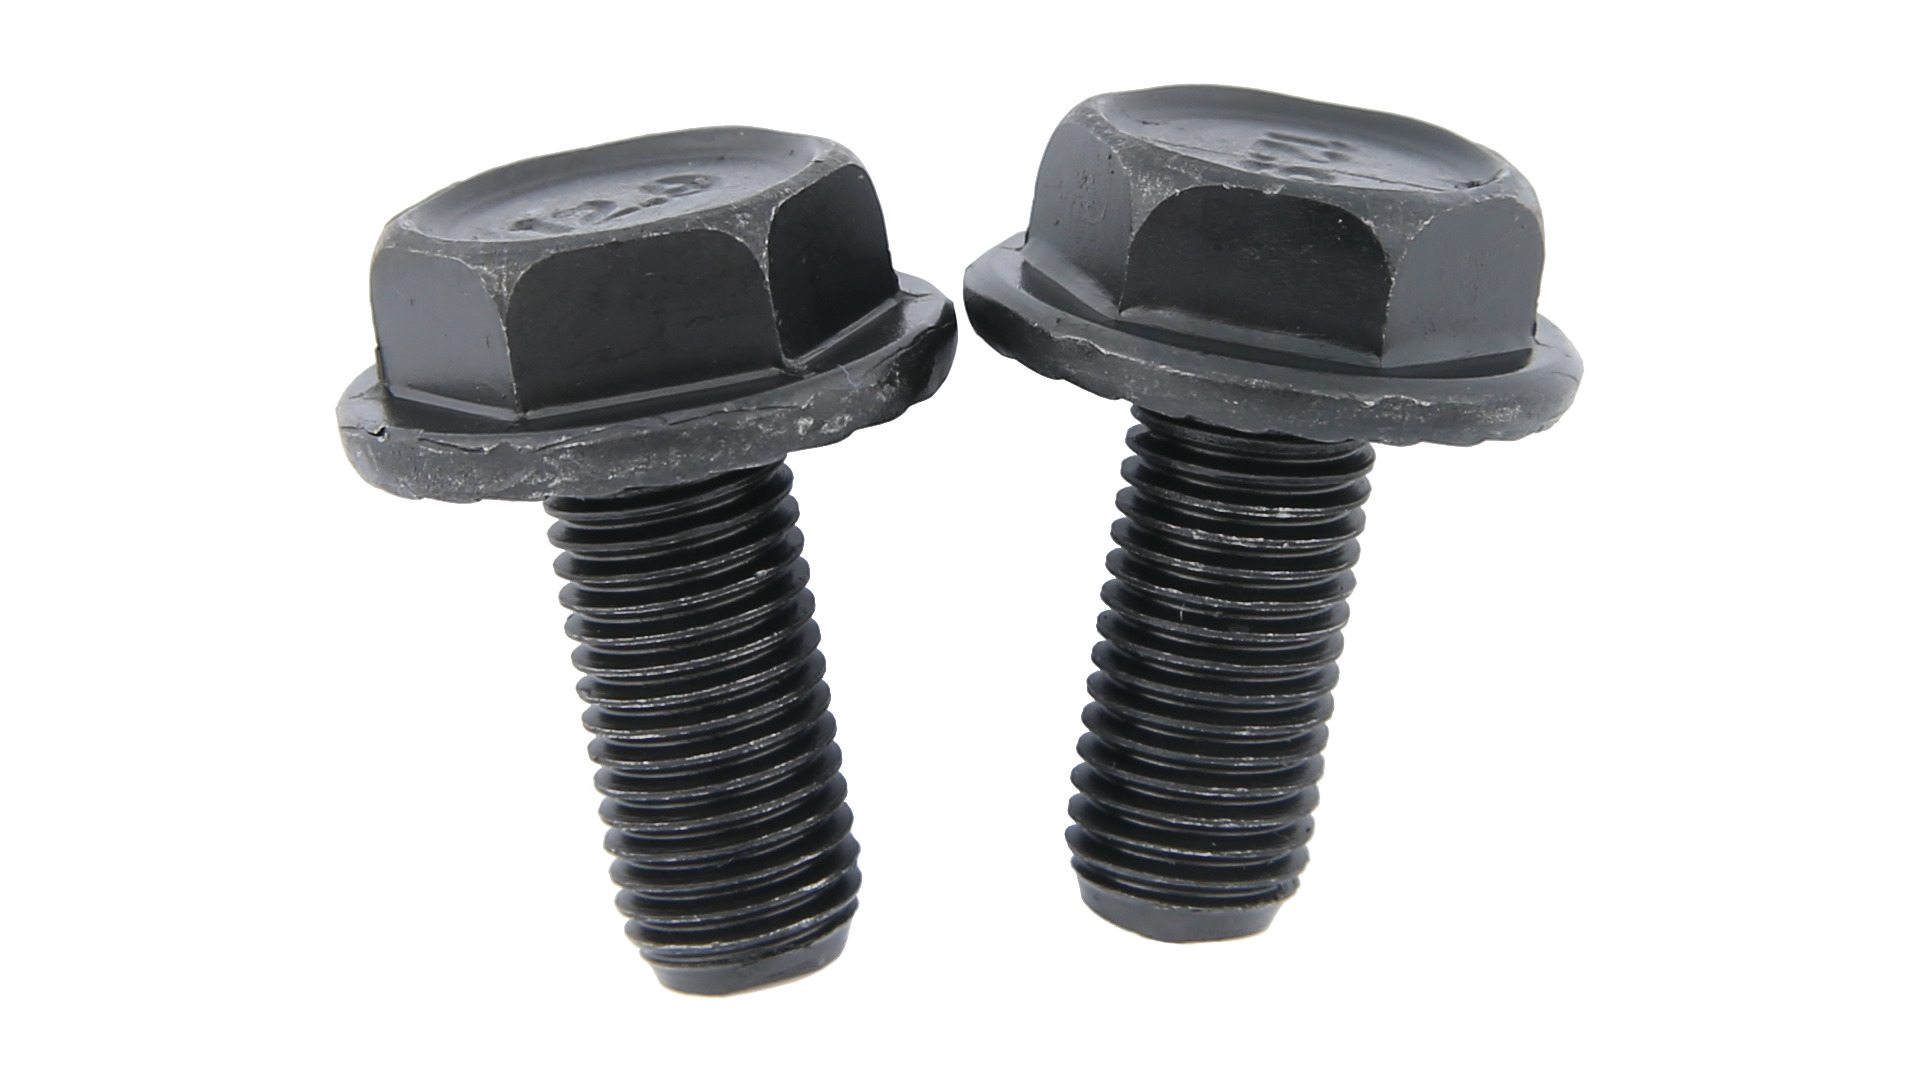 Contec Axle Bolts M8x1.0 w/ Serrated Washer for Bottom Brack